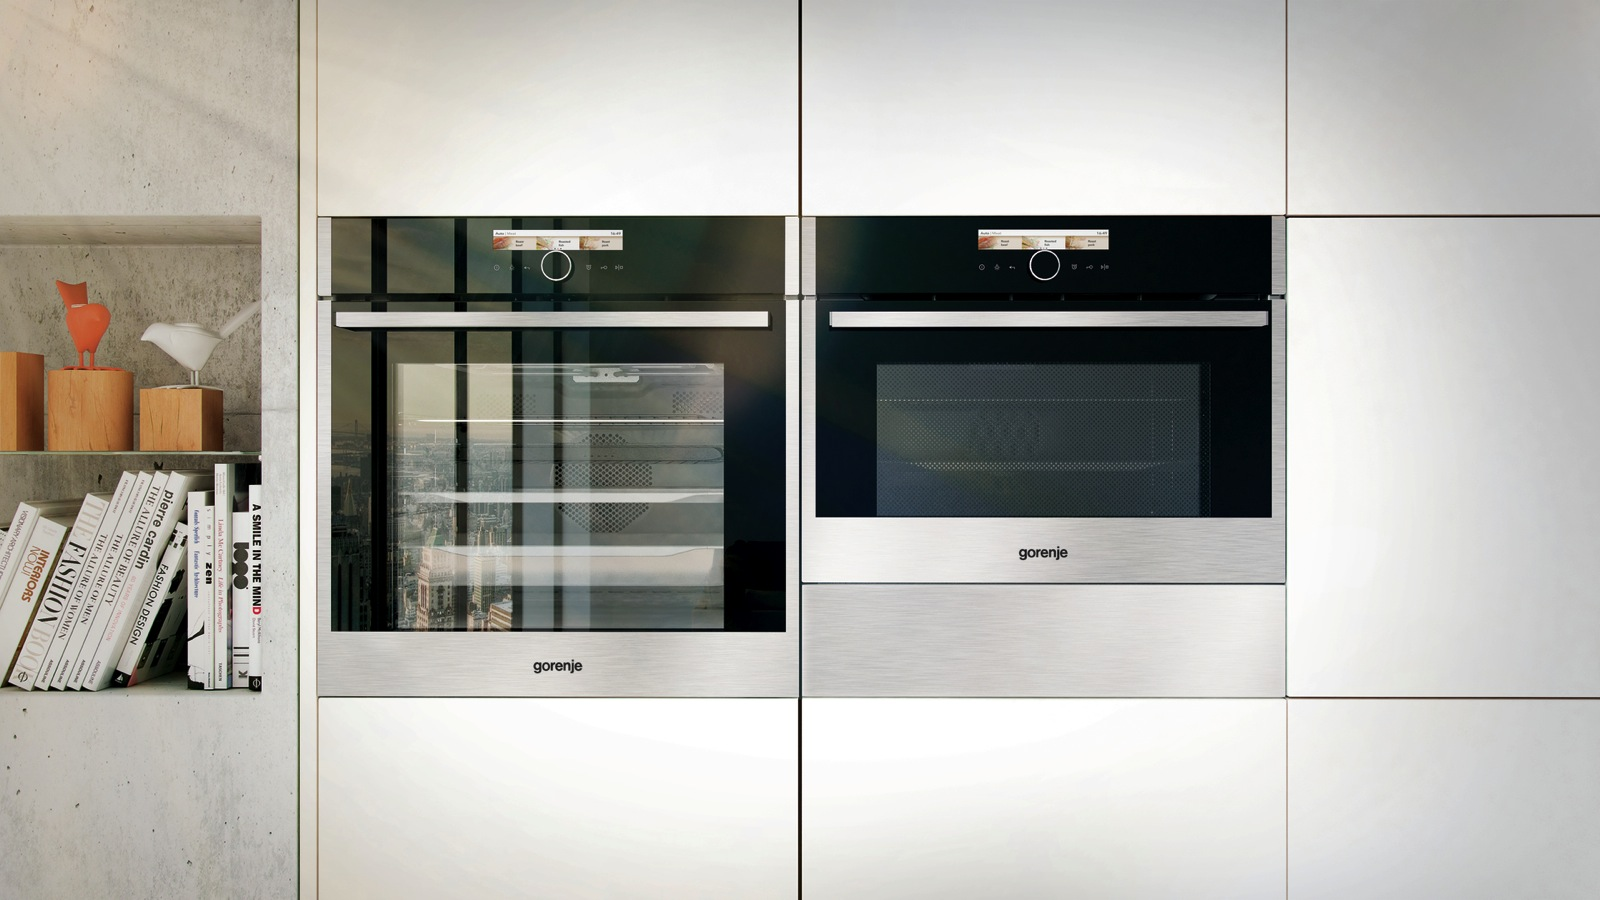 Built-in ovens: The joy of being single 6